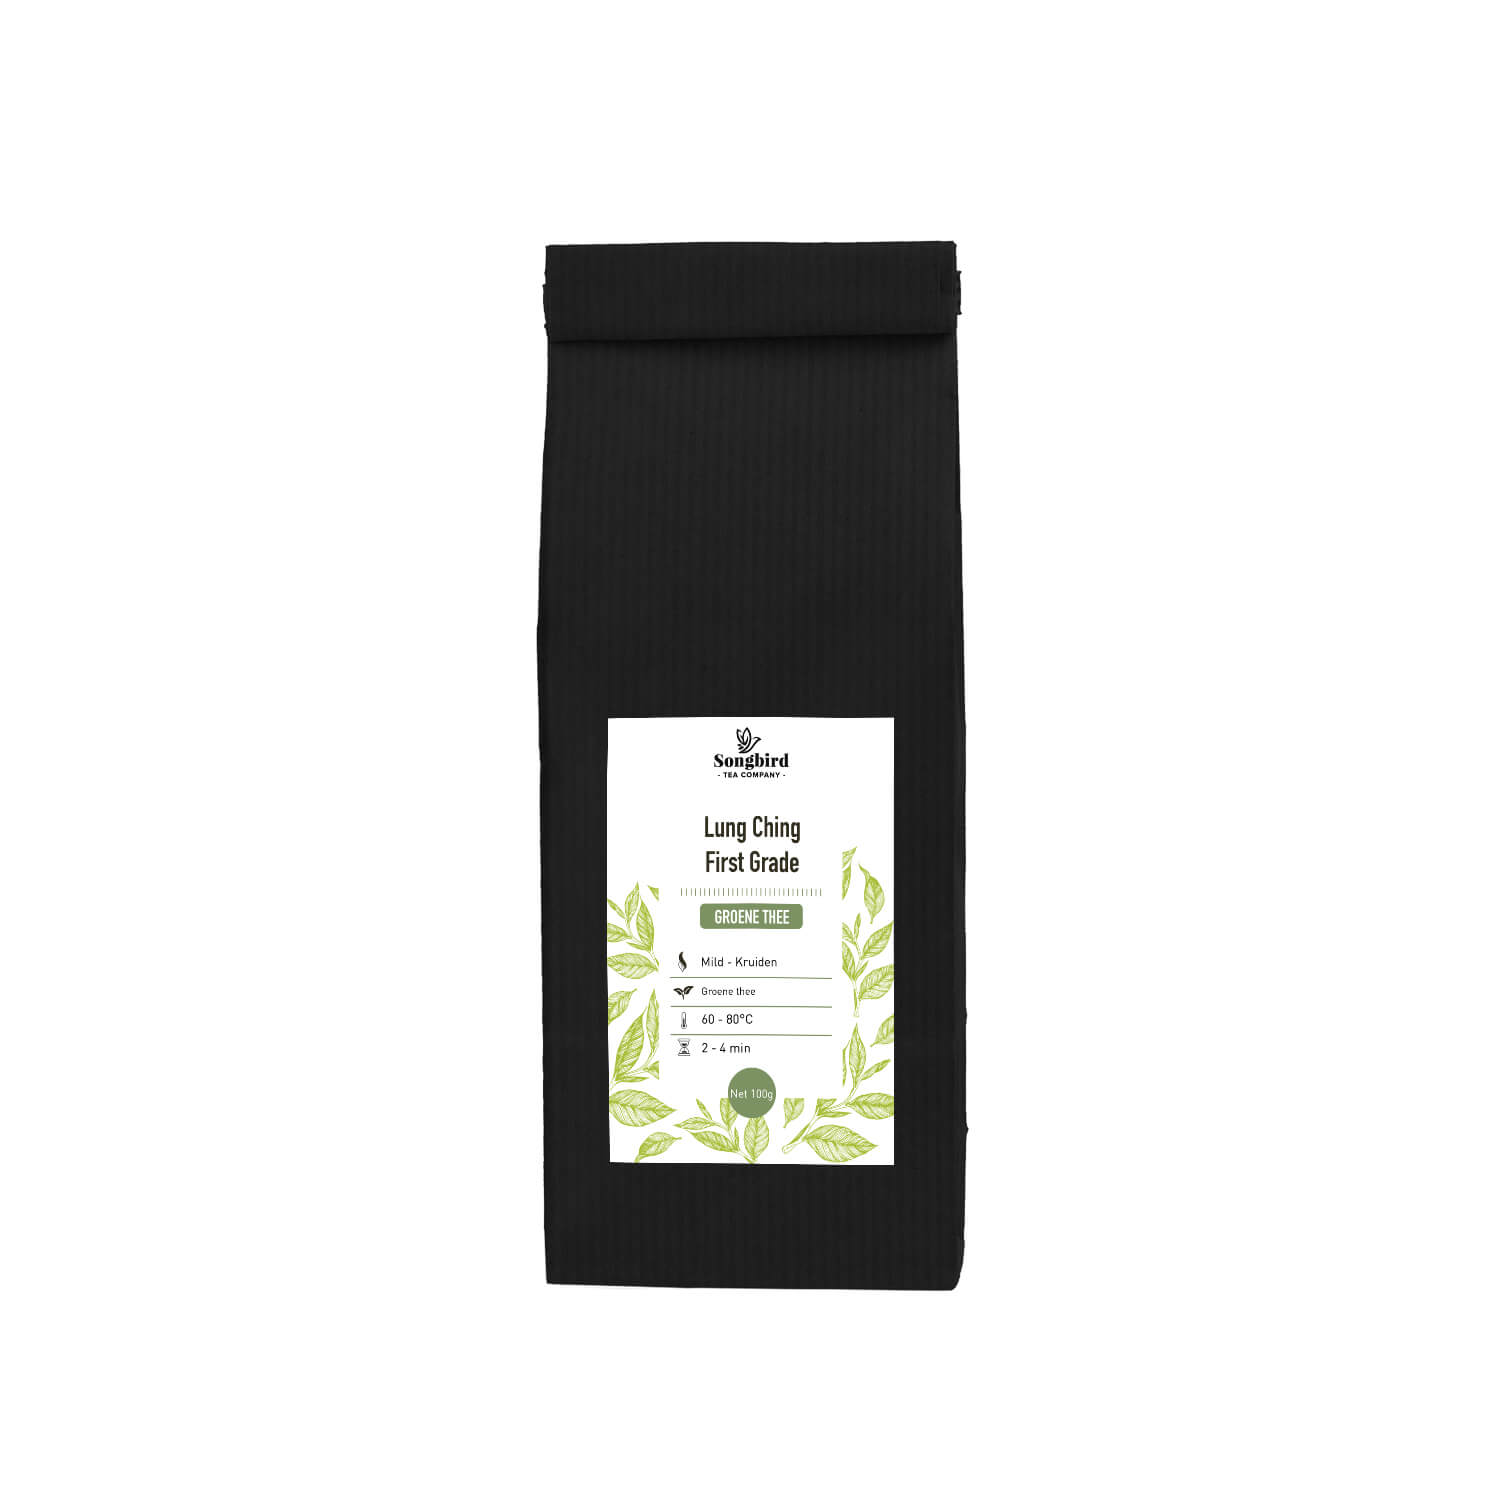 Groene thee - China Lung Ching - 100 gr